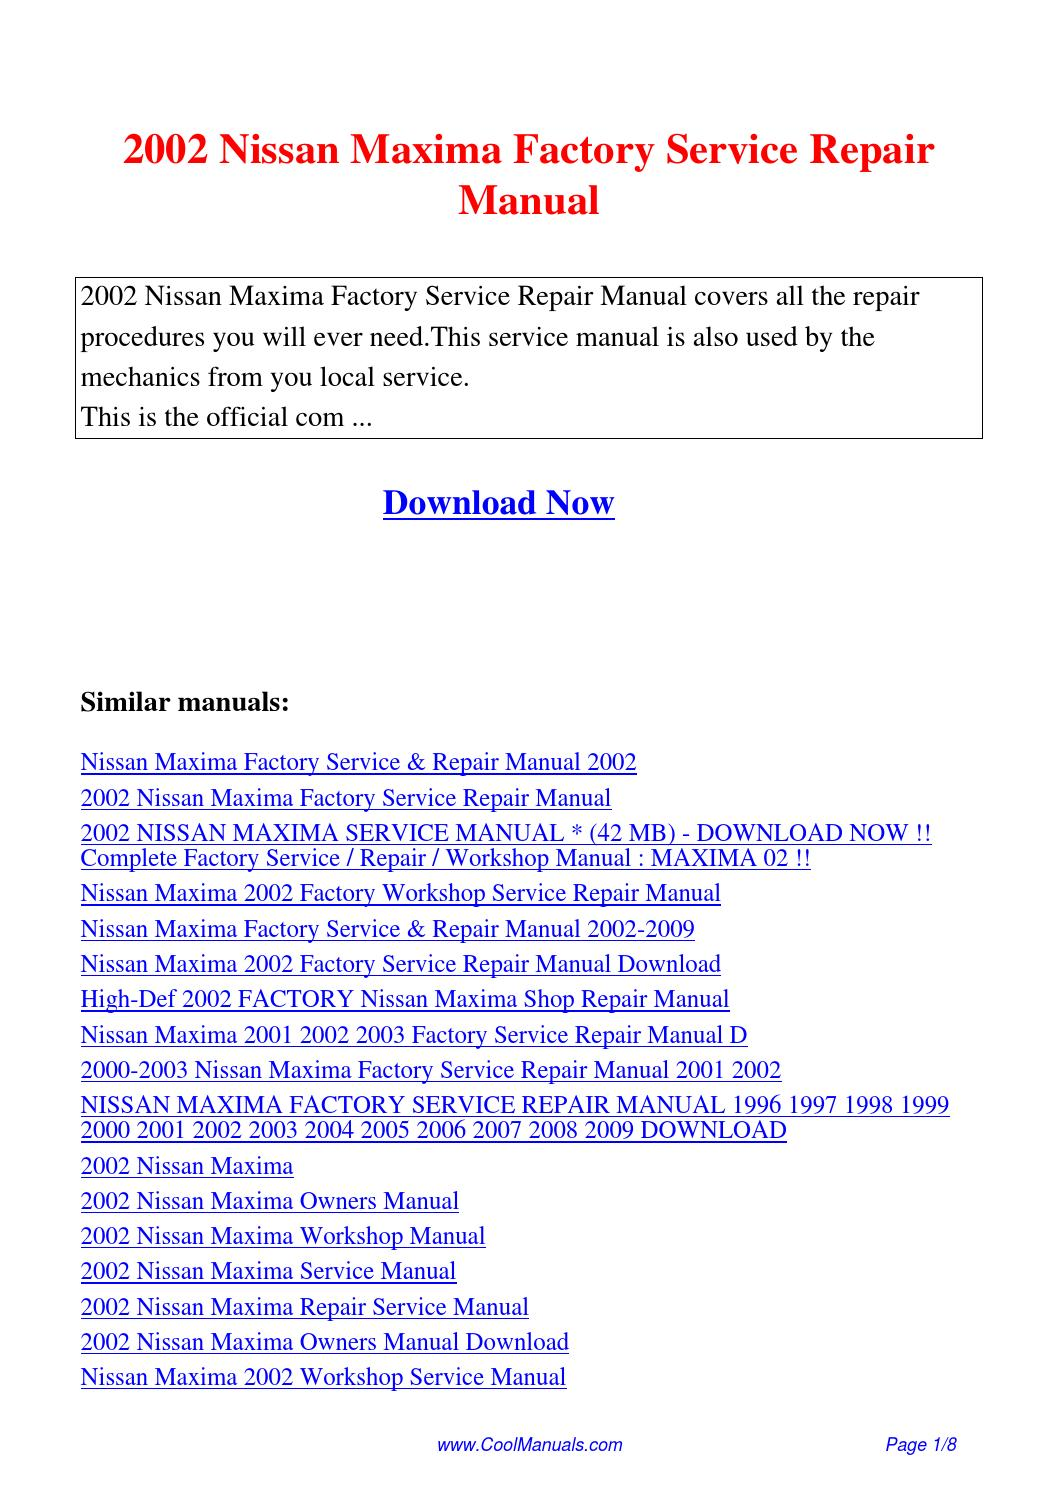 2002 Nissan Maxima Factory Service Repair Manual.pdf by Linda Pong - issuu